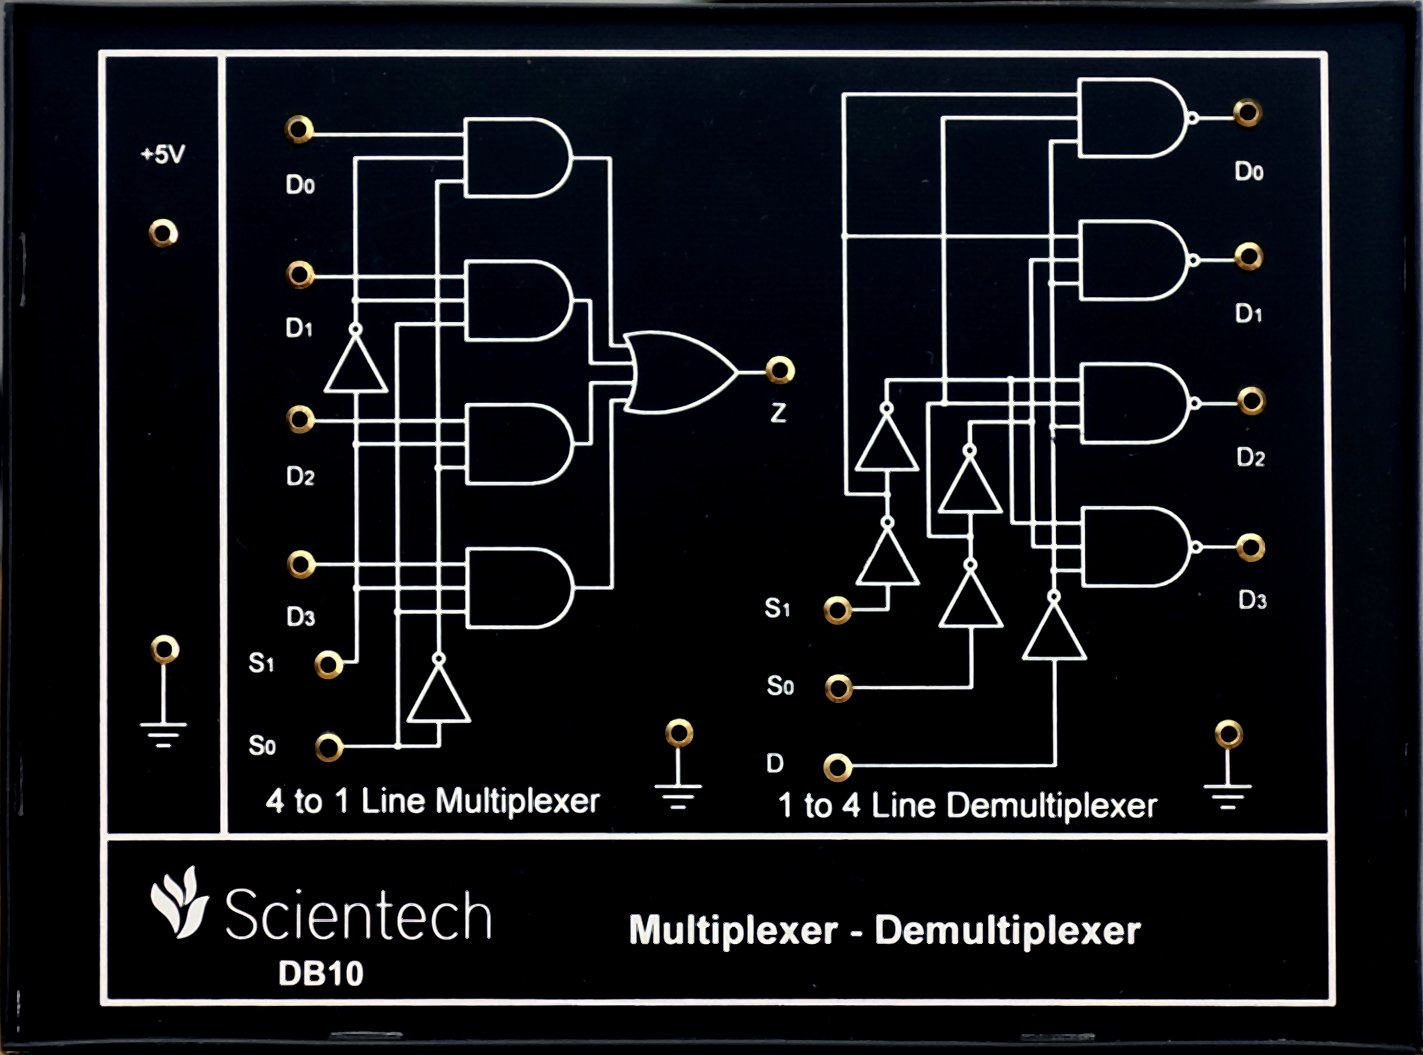 Db10 Multiplexer Demultiplexer Experiment Board And Trainer Kit Logic Diagram With 1 Year Warranty